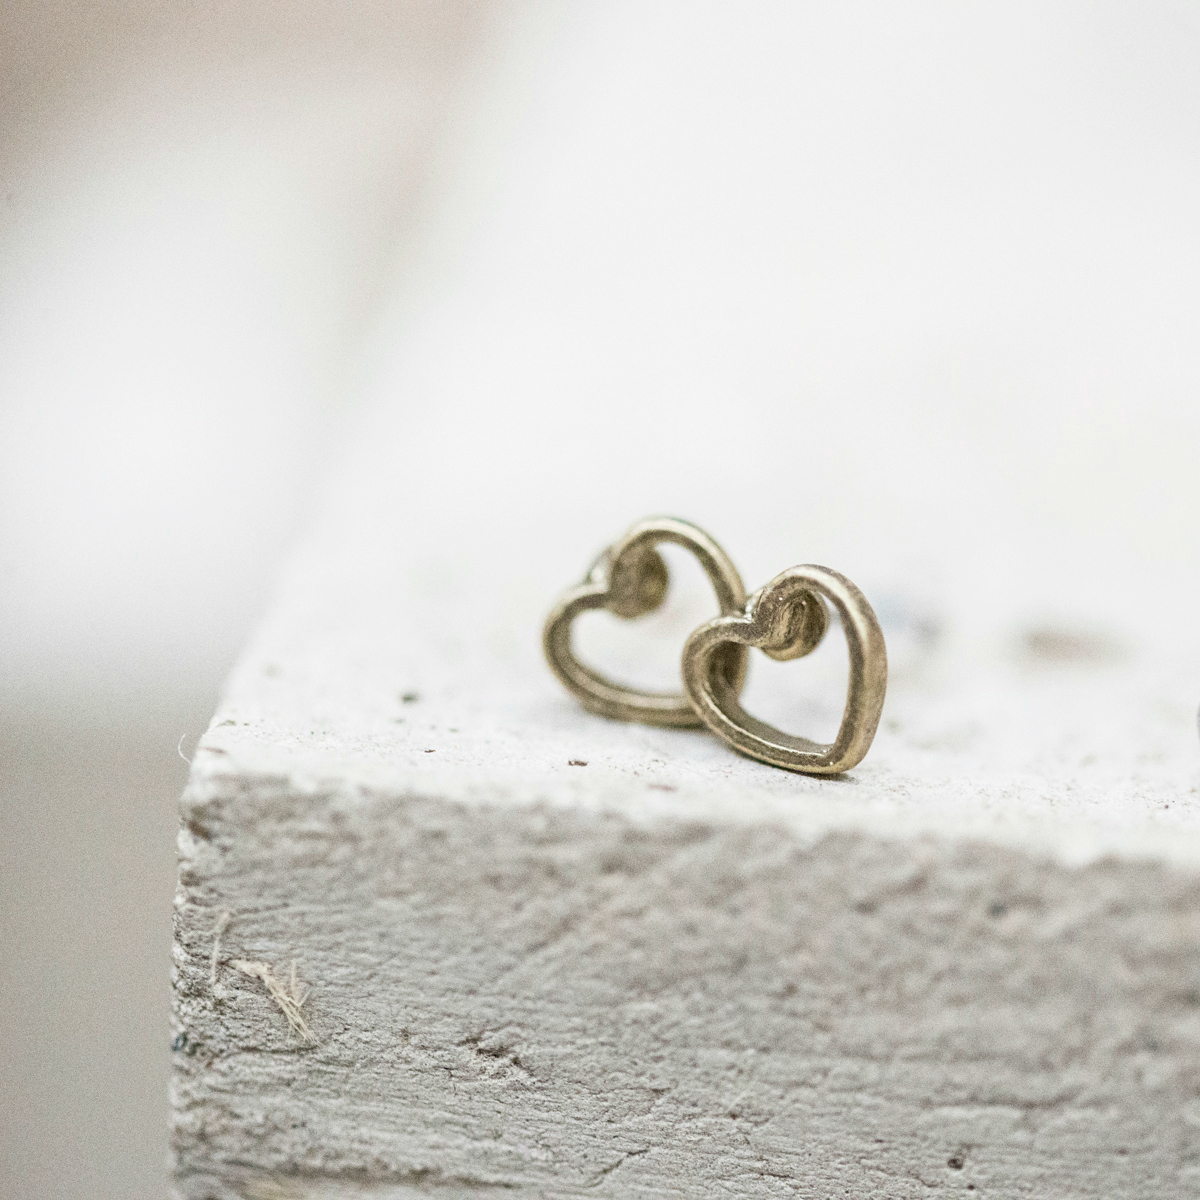 Tutti & Co Gold Open Heart Studs available at Birdhouse Jewellery